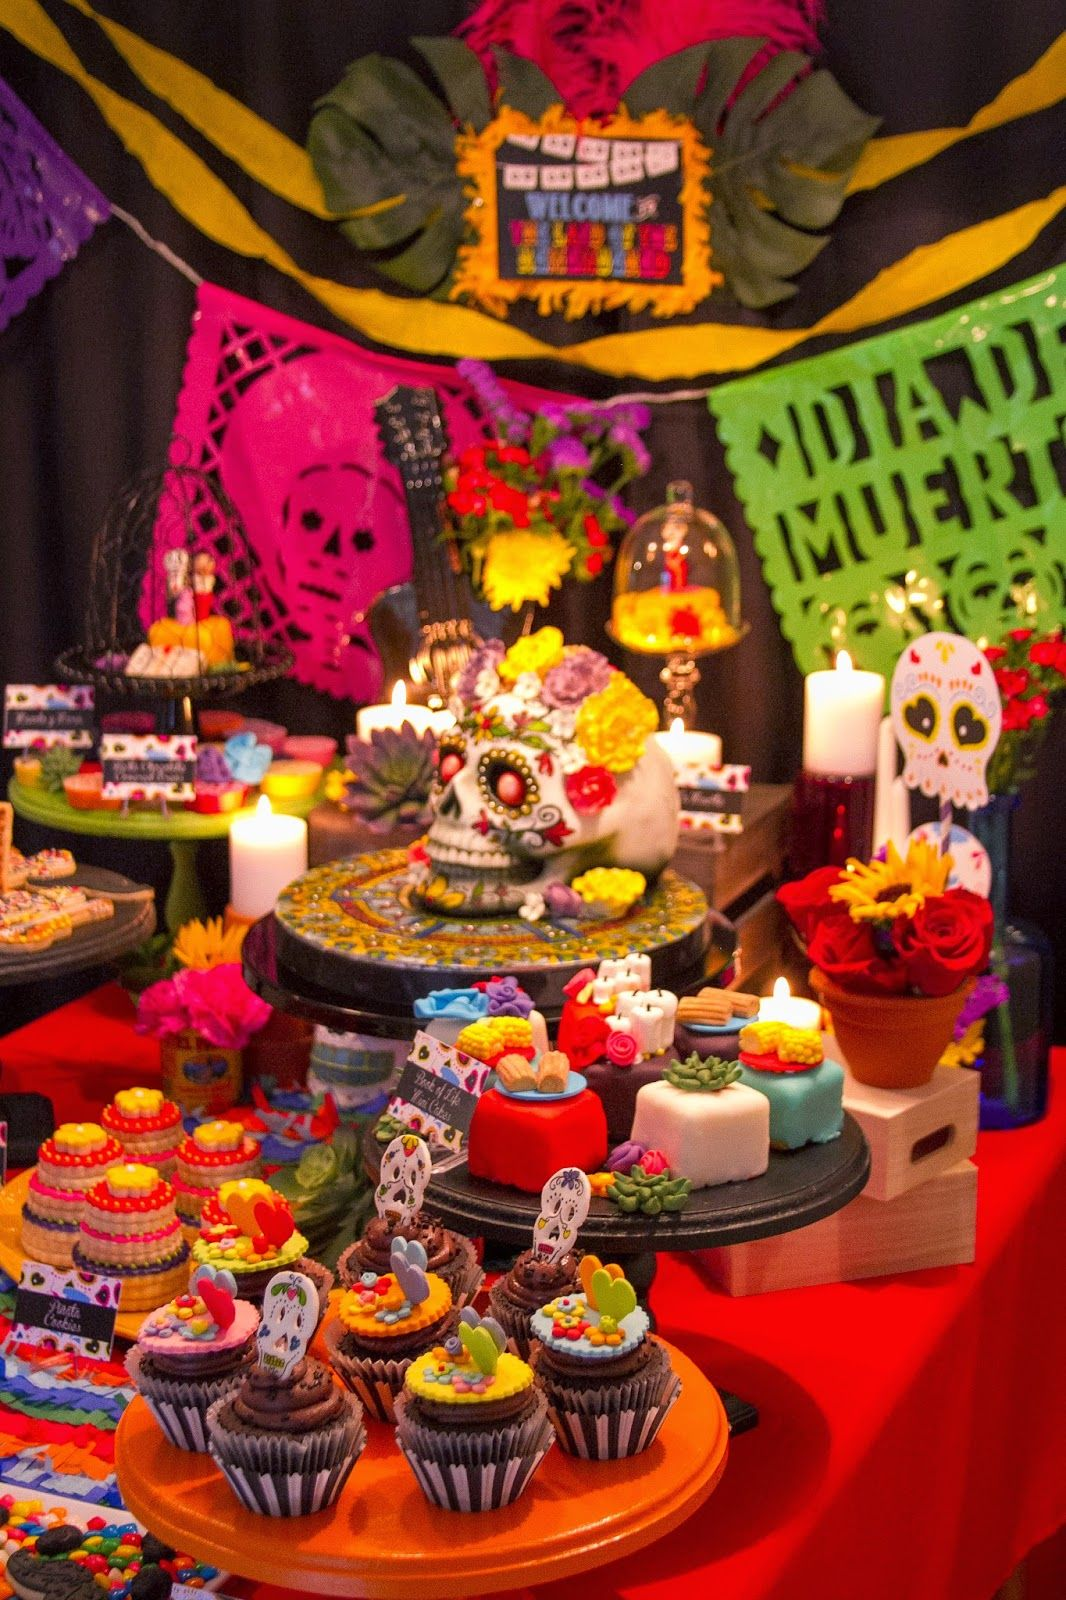 In Flight Party Ideas The Book Of Life Movie Release Party Day Of The Dead Party Book Of Life Movie Dia De Los Muertos Party Ideas